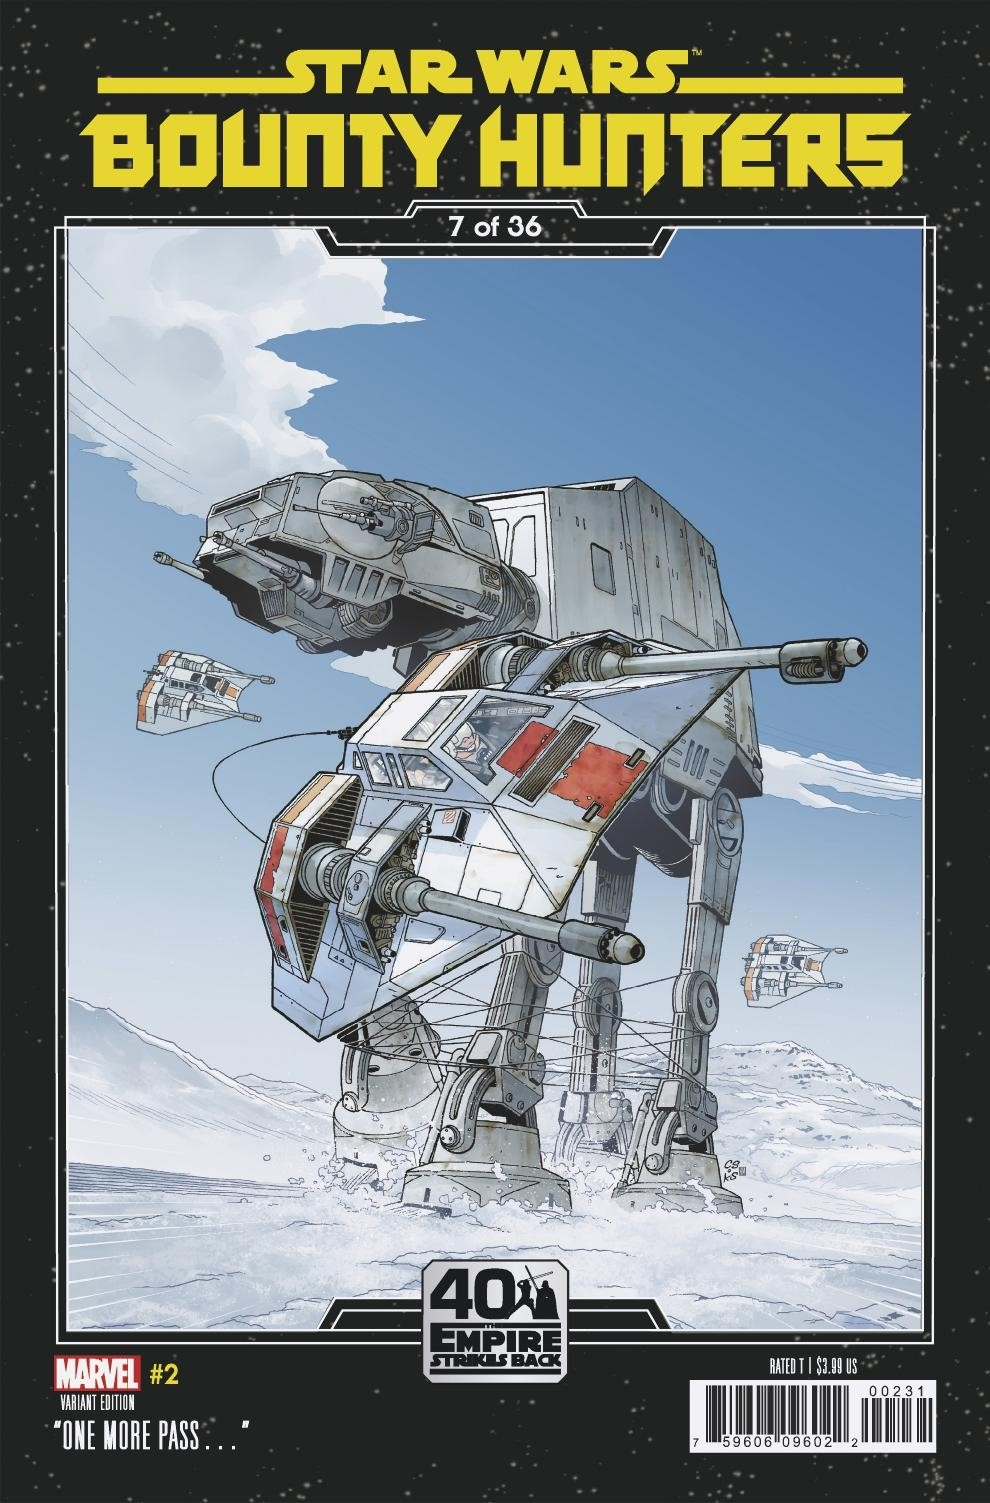 Bounty Hunters #2 (Chris Sprouse The Empire Strikes Back Variant Cover 7 of 36) (25.03.2020)